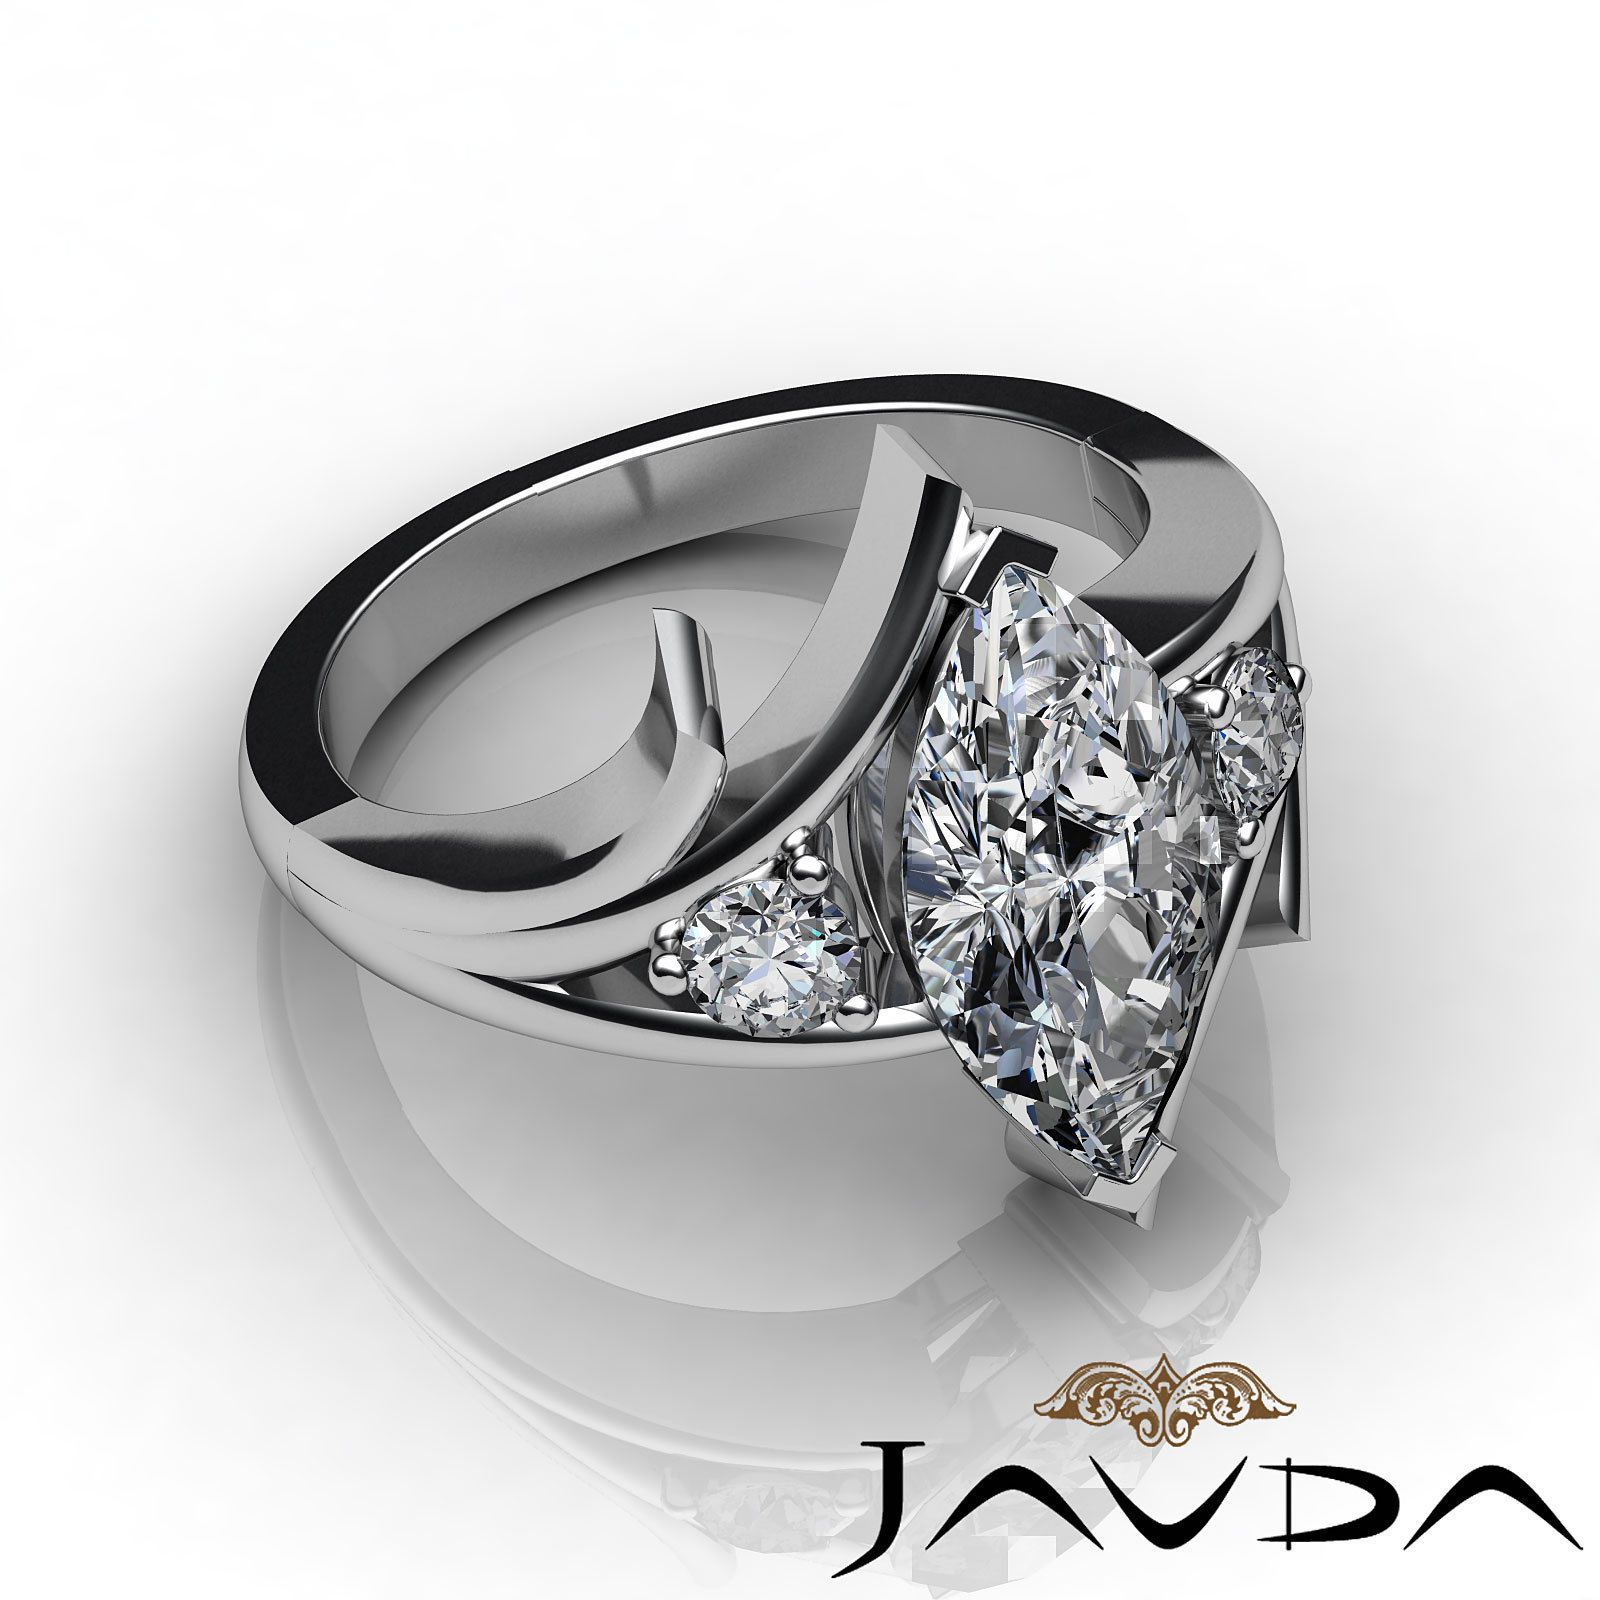 your silver shop jewellery ring and make own rings gold stone wedding